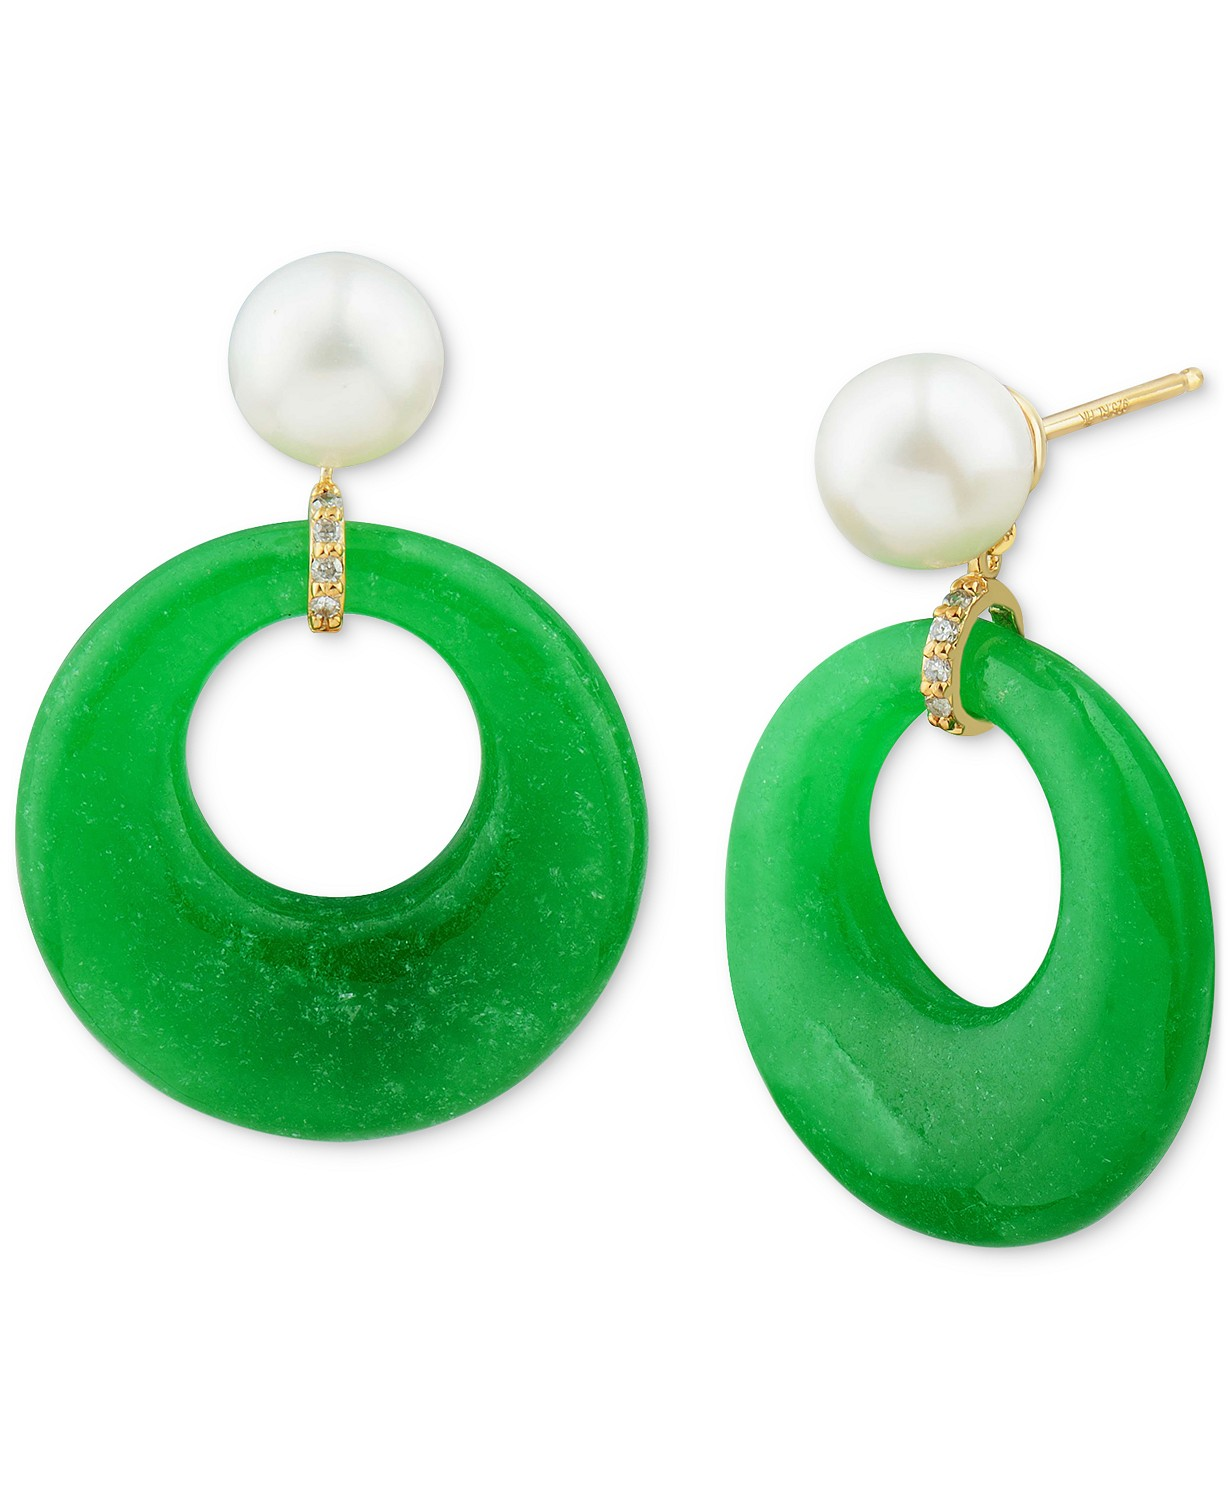 Cultured Freshwater Pearl (7mm), Dyed Jade & Diamond Accent Hoop Drop Earrings in 14k Gold-Plated Sterling Silver